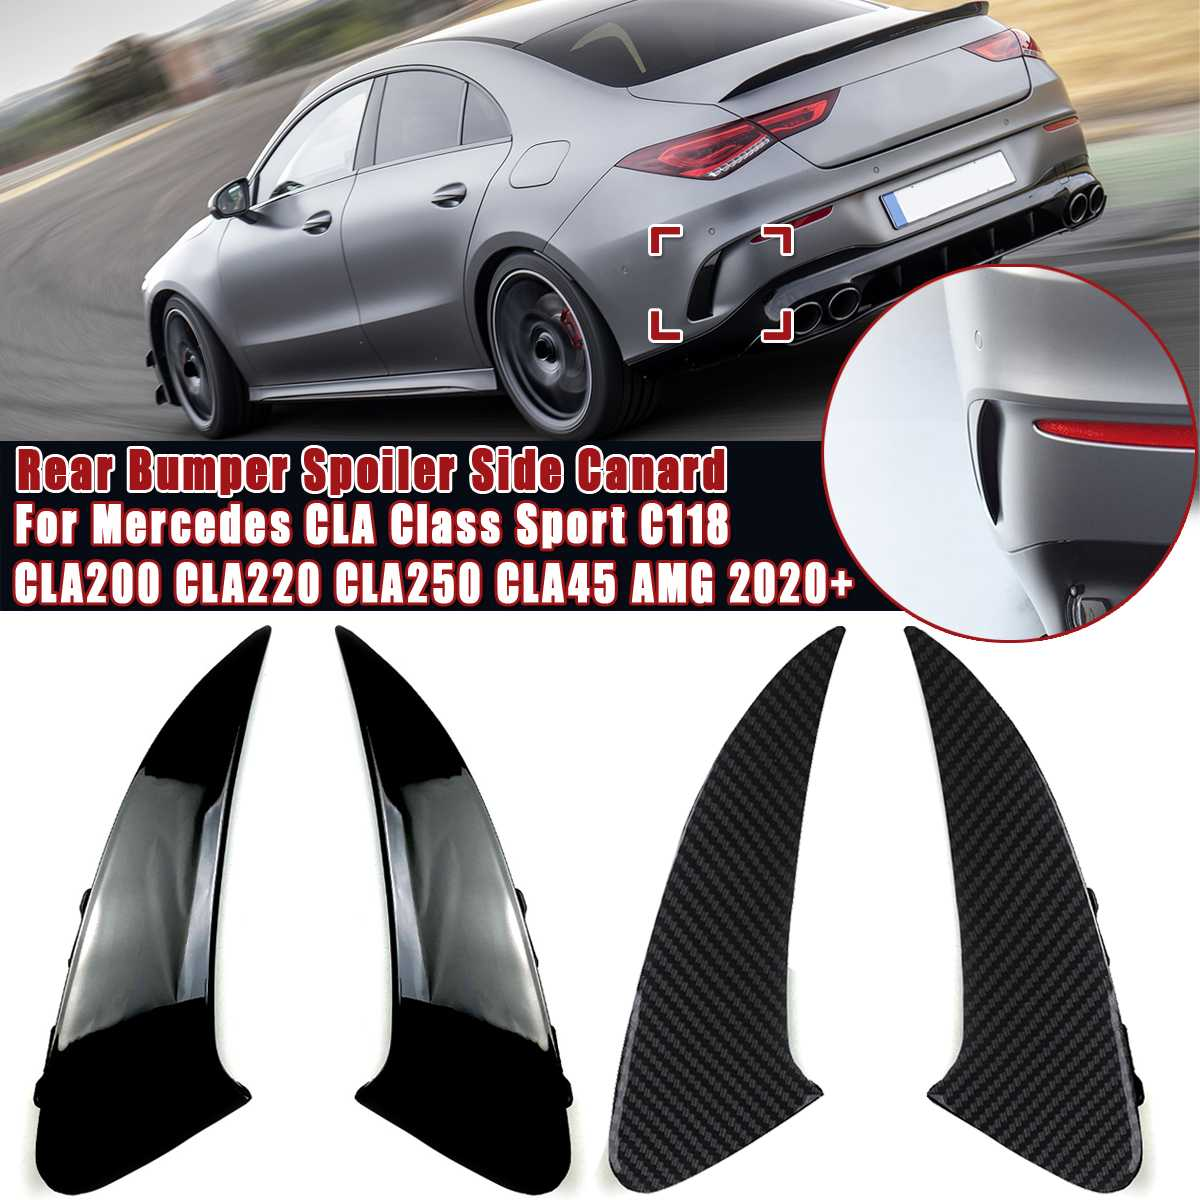 2Pcs/set Car Rear Bumper <font><b>Spoiler</b></font> Side Wing Canard For Mercedes CLA Class Sport C118 CLA200 CLA220 <font><b>CLA250</b></font> CLA45 AMG 2020+ image